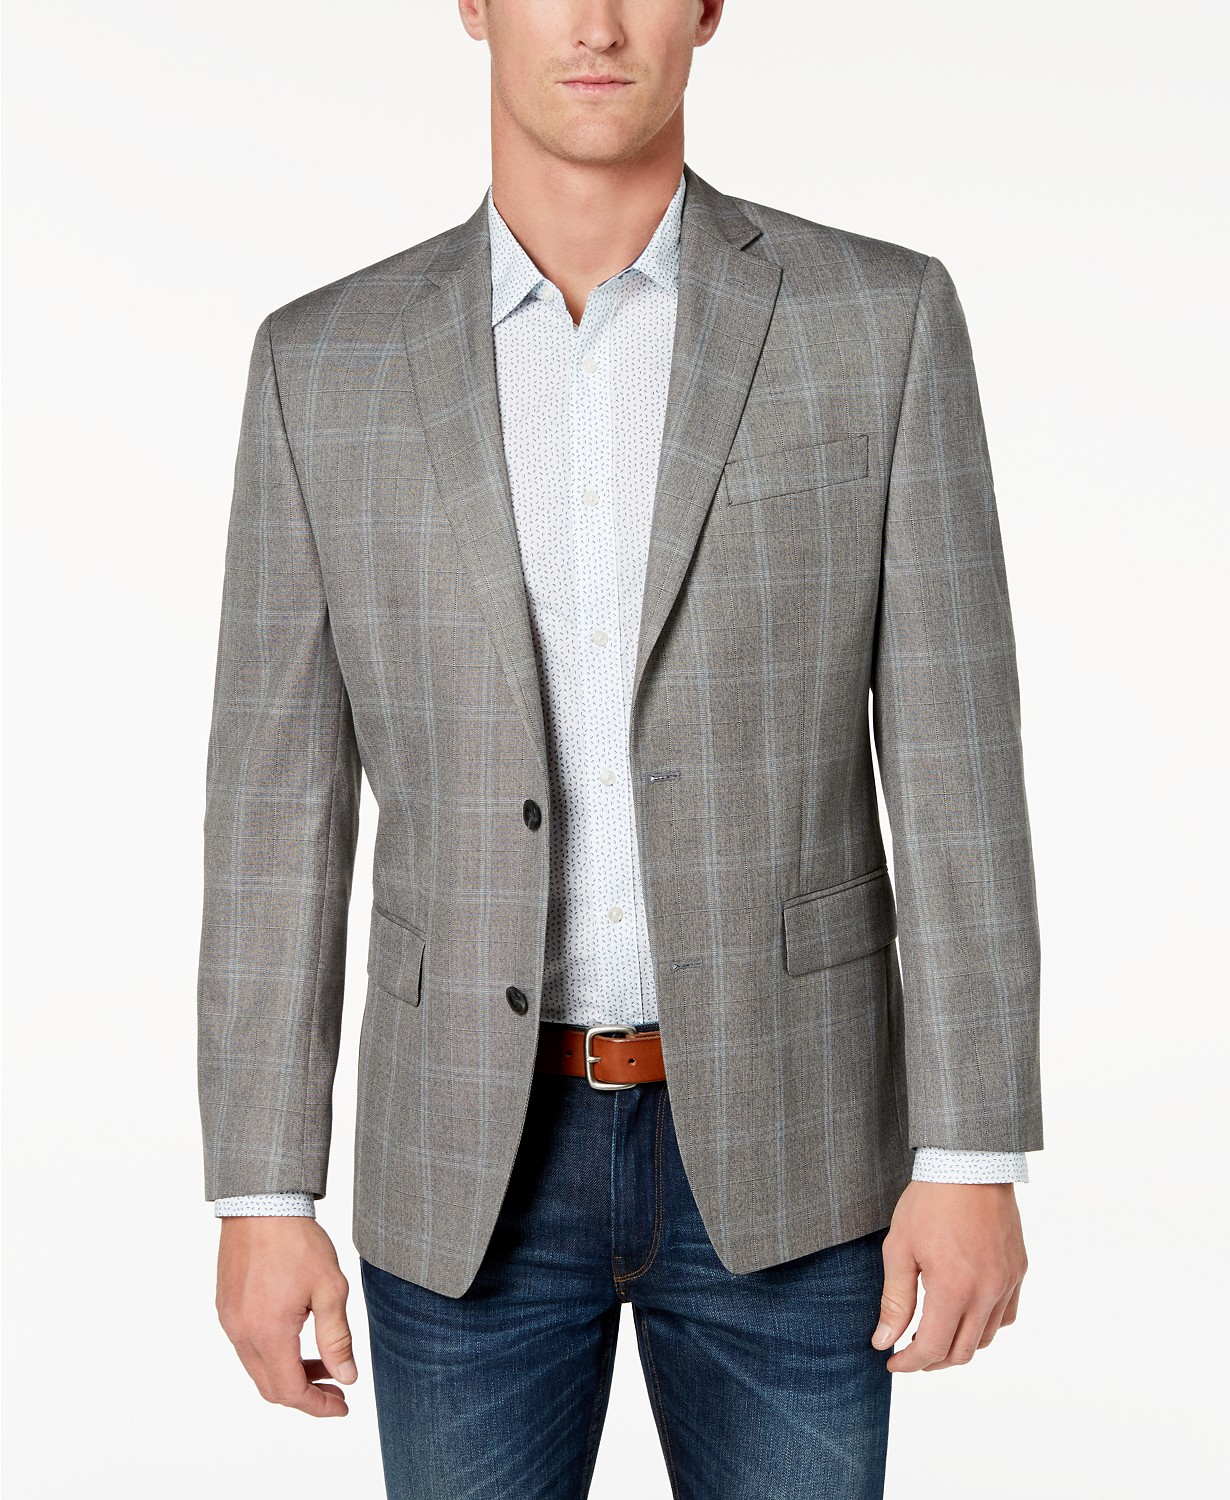 Michael Kors Men's Classic-Fit Grey Plaid Sport Coat